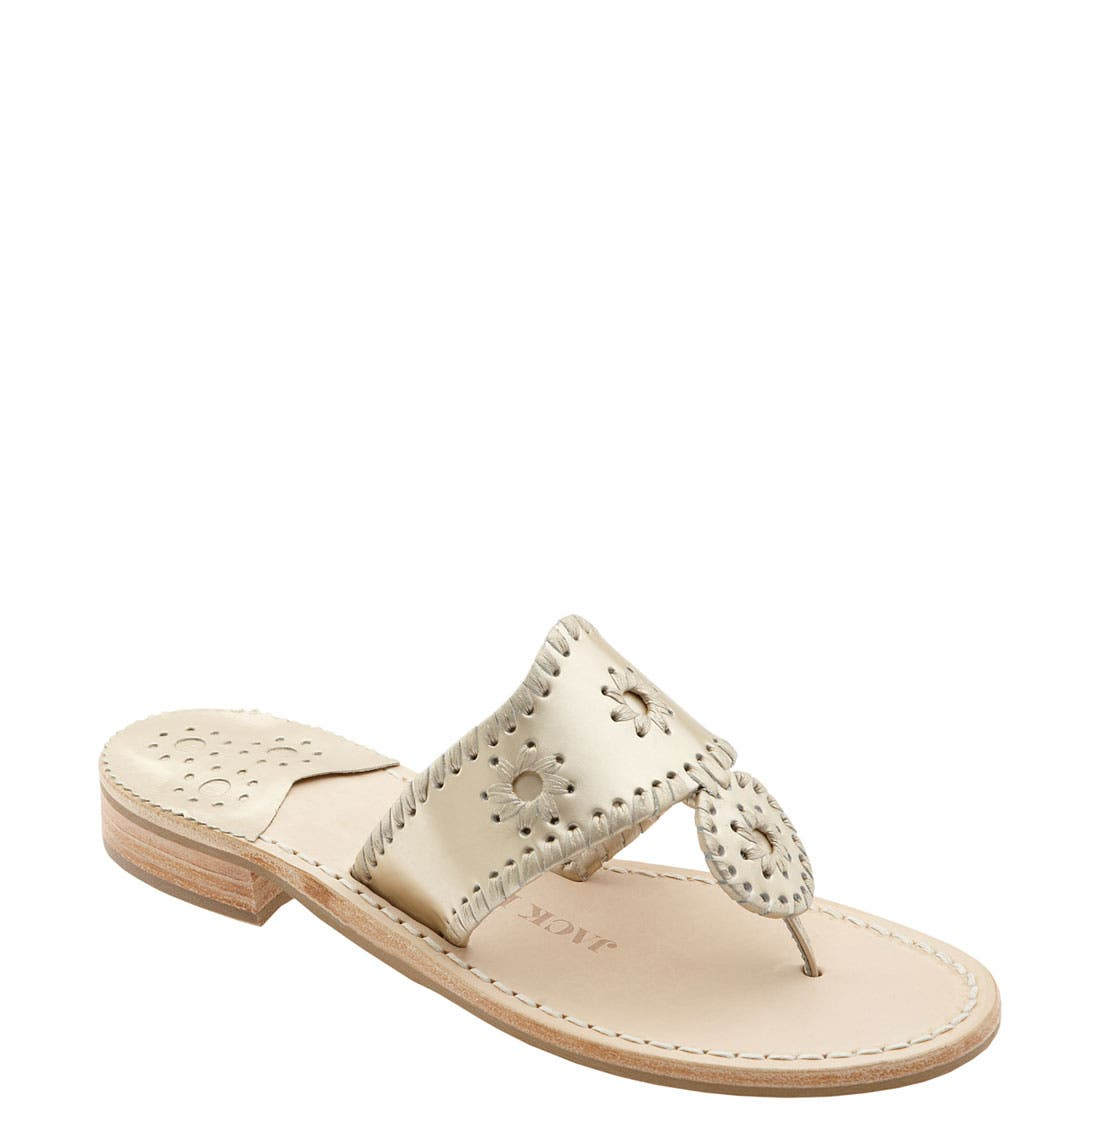 JACK ROGERS Palm Beach Whipstitch Thong Sandal in Platinum